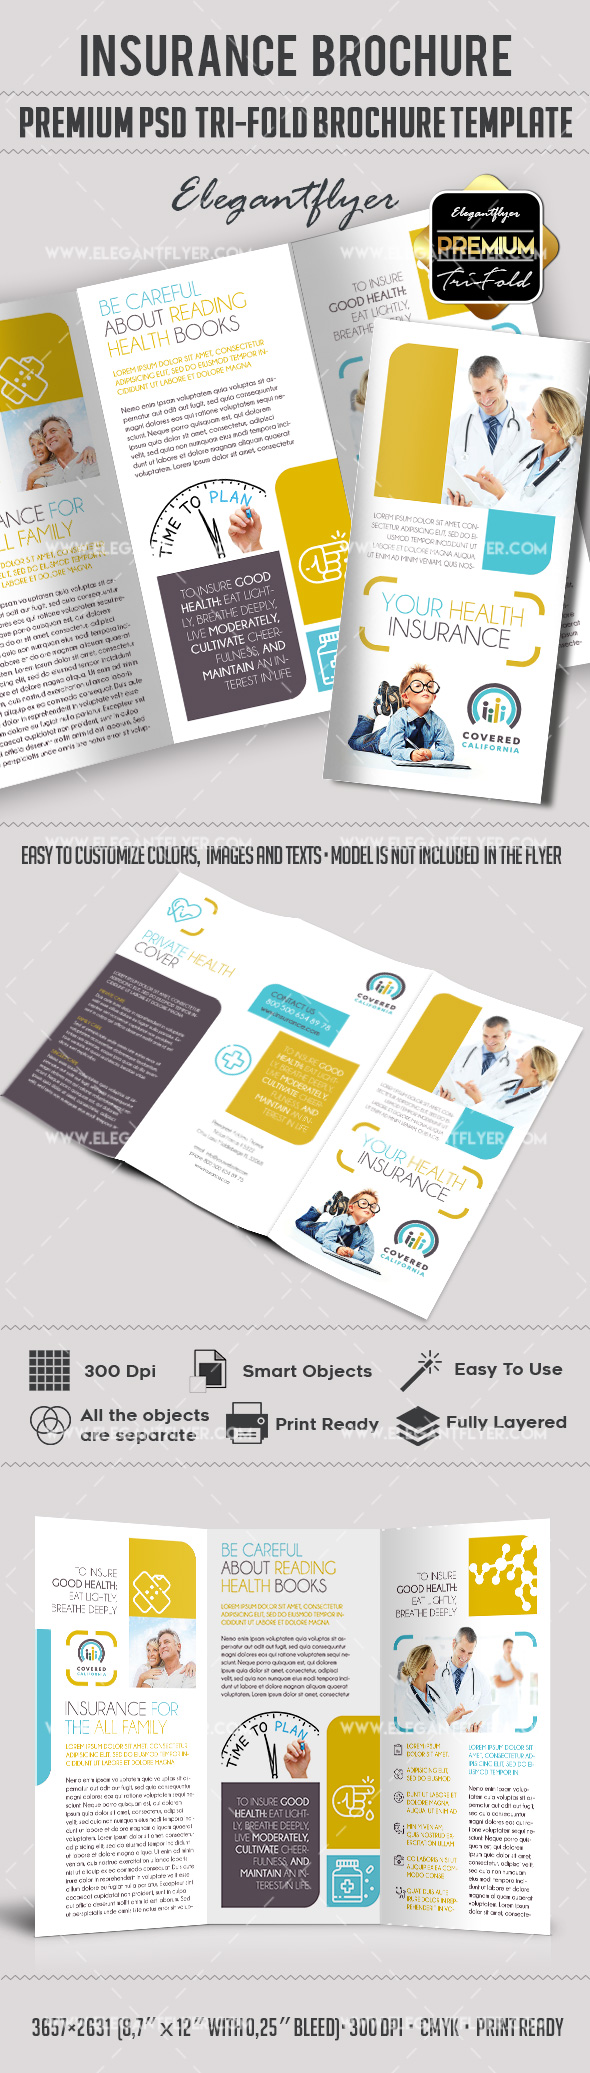 Health insurance psd brochure by elegantflyer for Tri fold brochure template psd